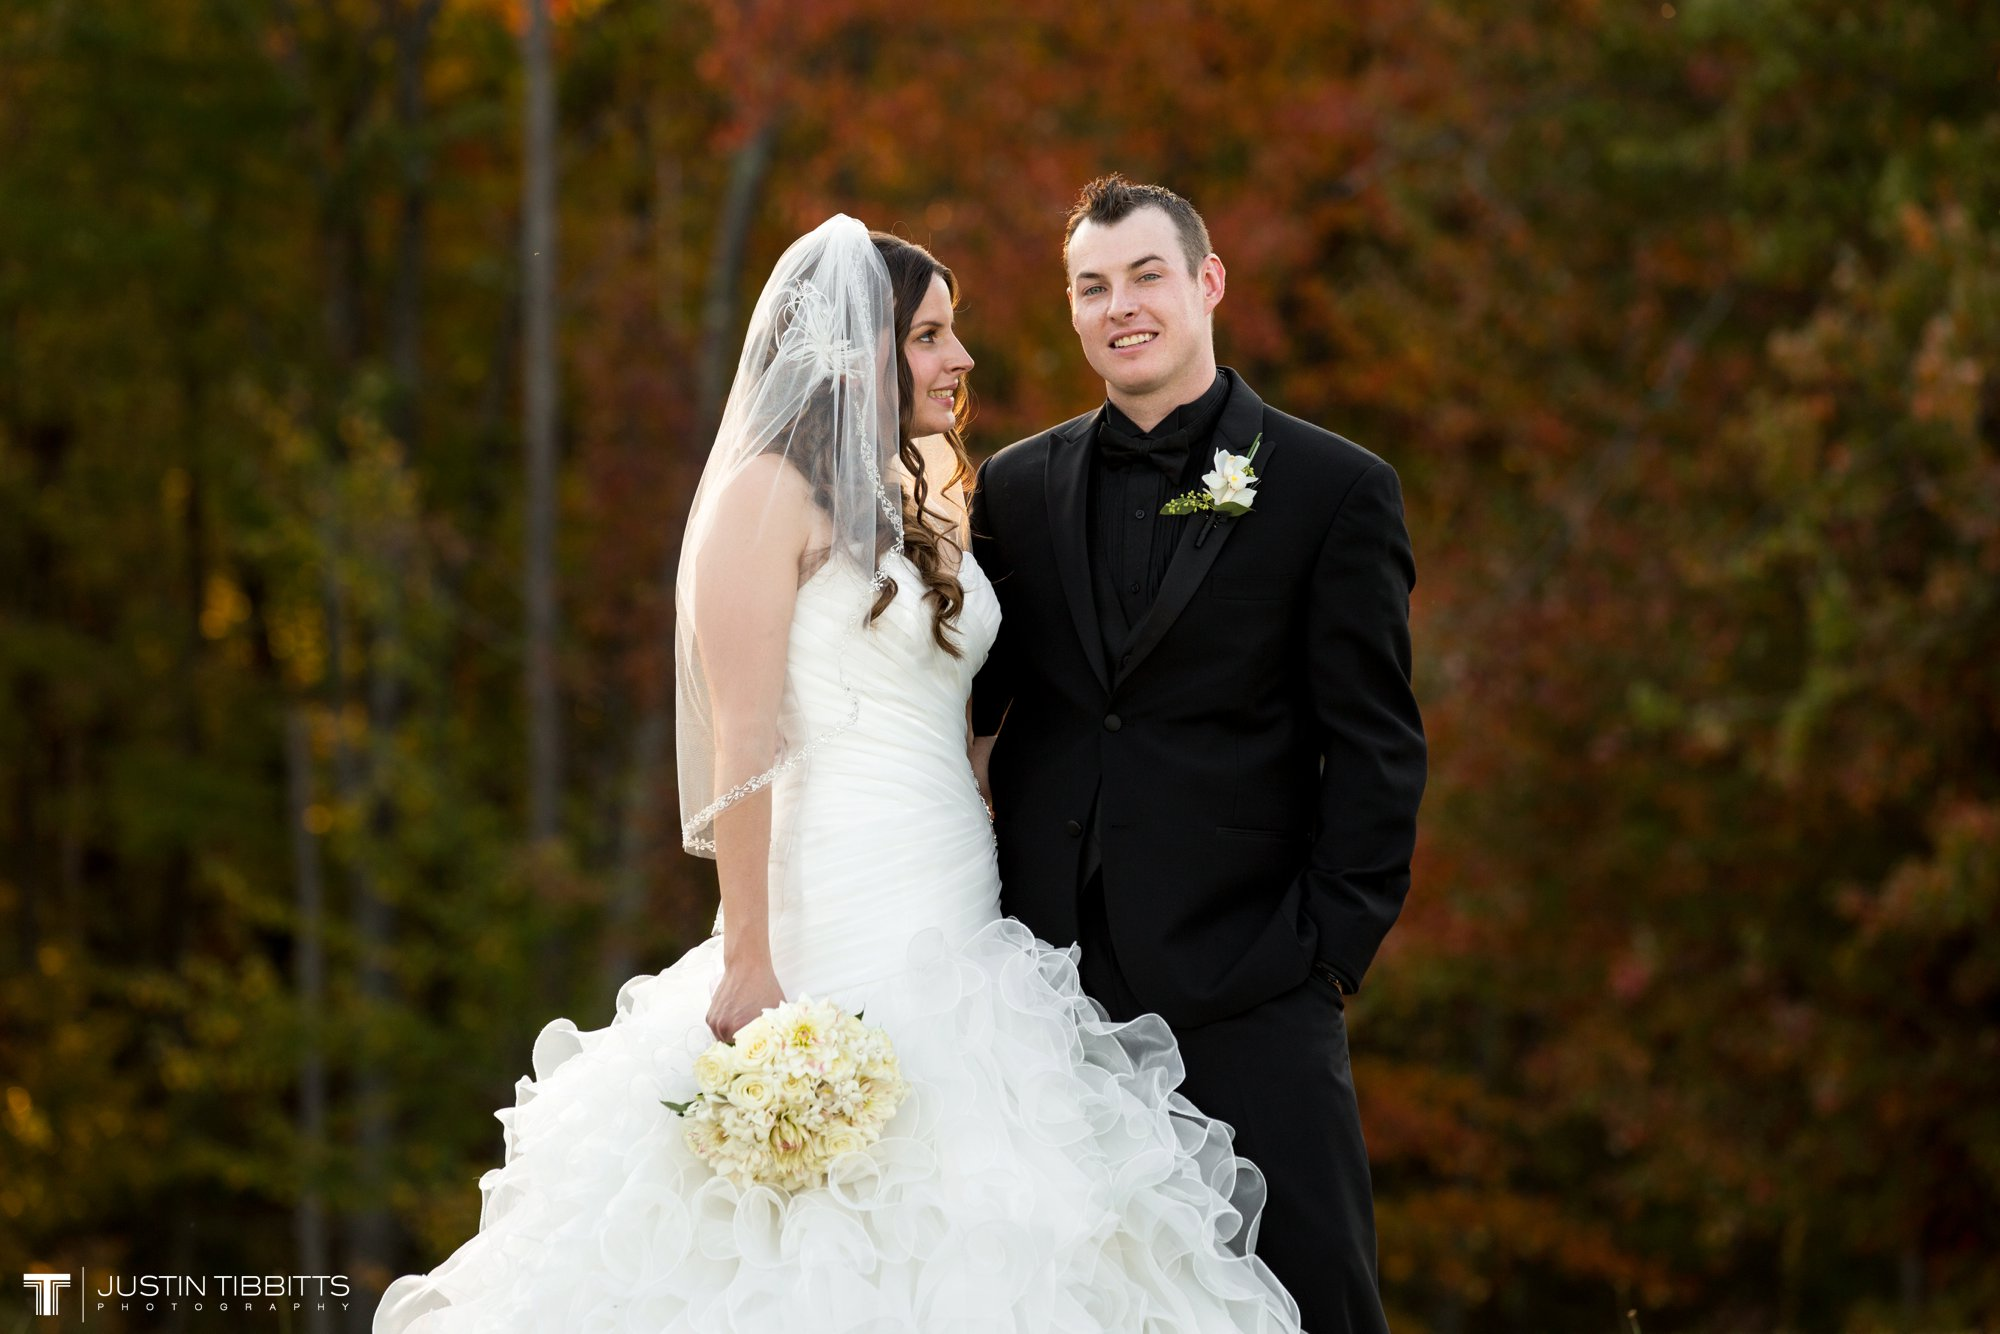 Justin Tibbitts Photography Mr and Mrs Zaffino Deannas Bridal Wedding-306